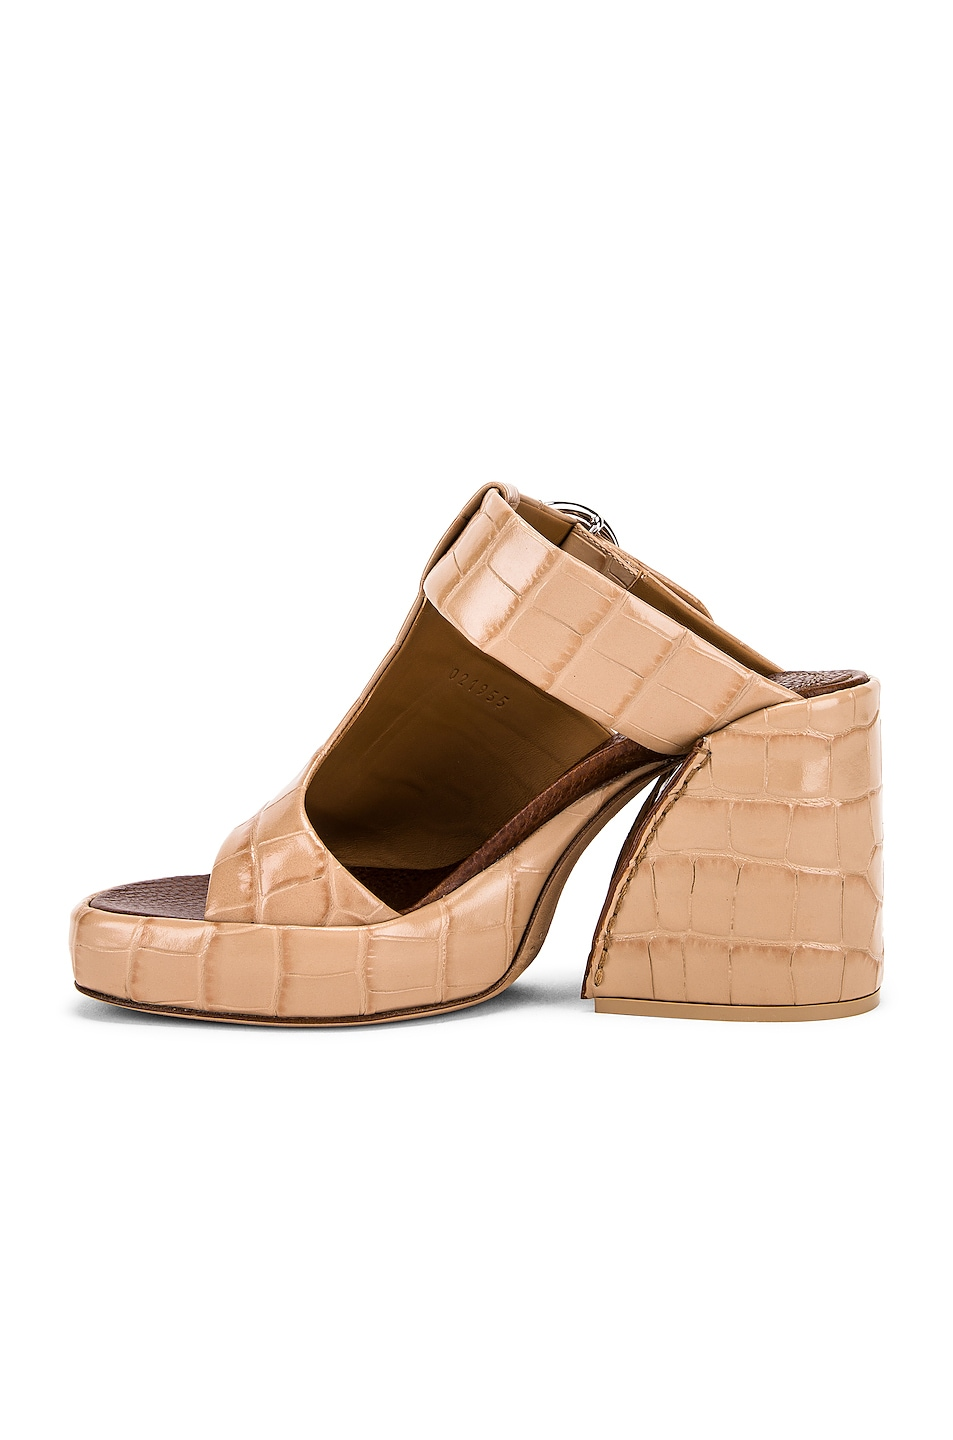 Image 5 of Chloe Buckle Platform Sandals in Nougat